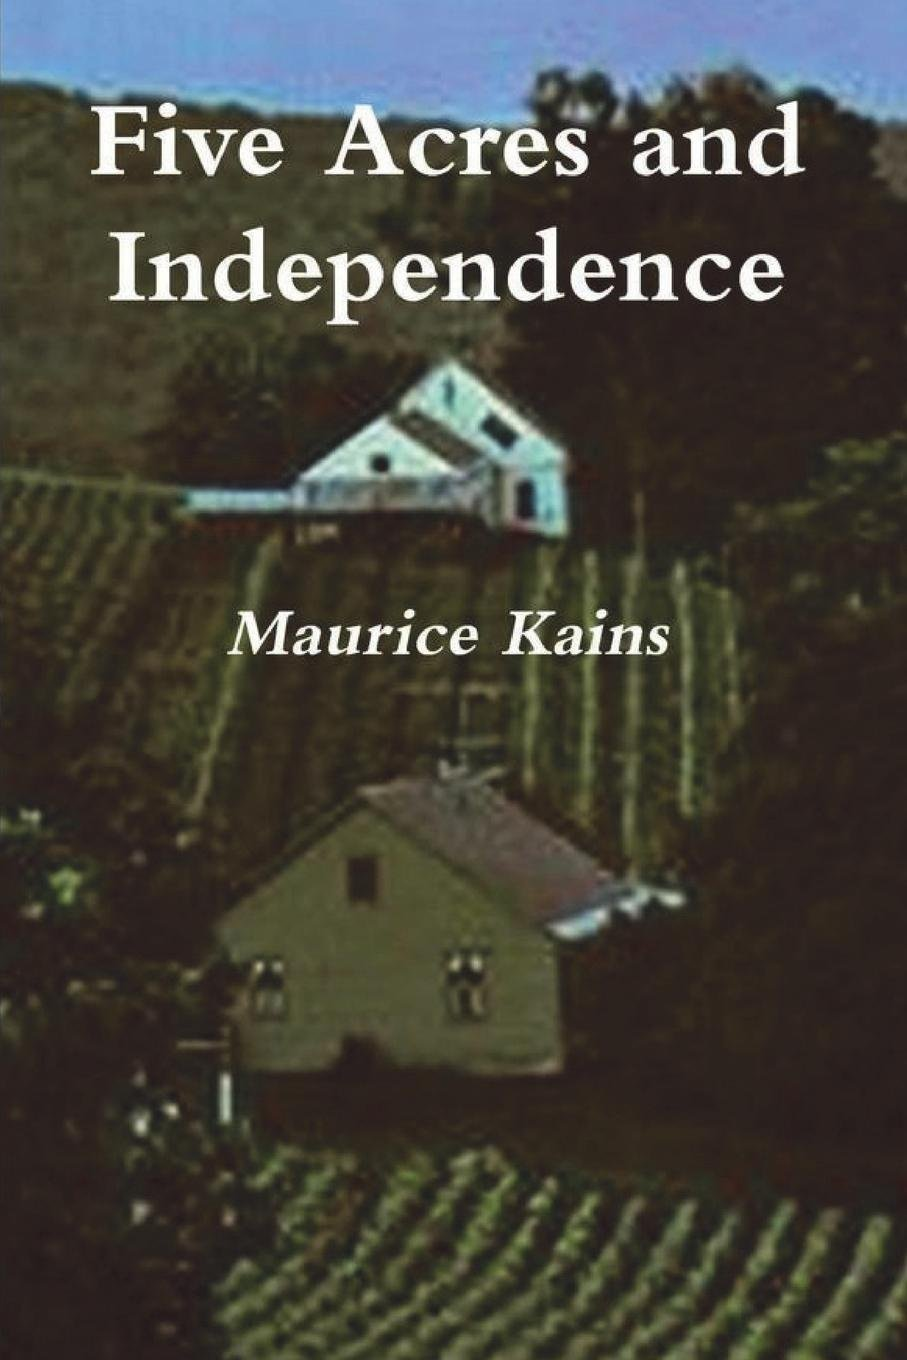 Five Acres And Independence A Practical Guide To The Selection And Management Of The Small Farm Paperback July 25 2018